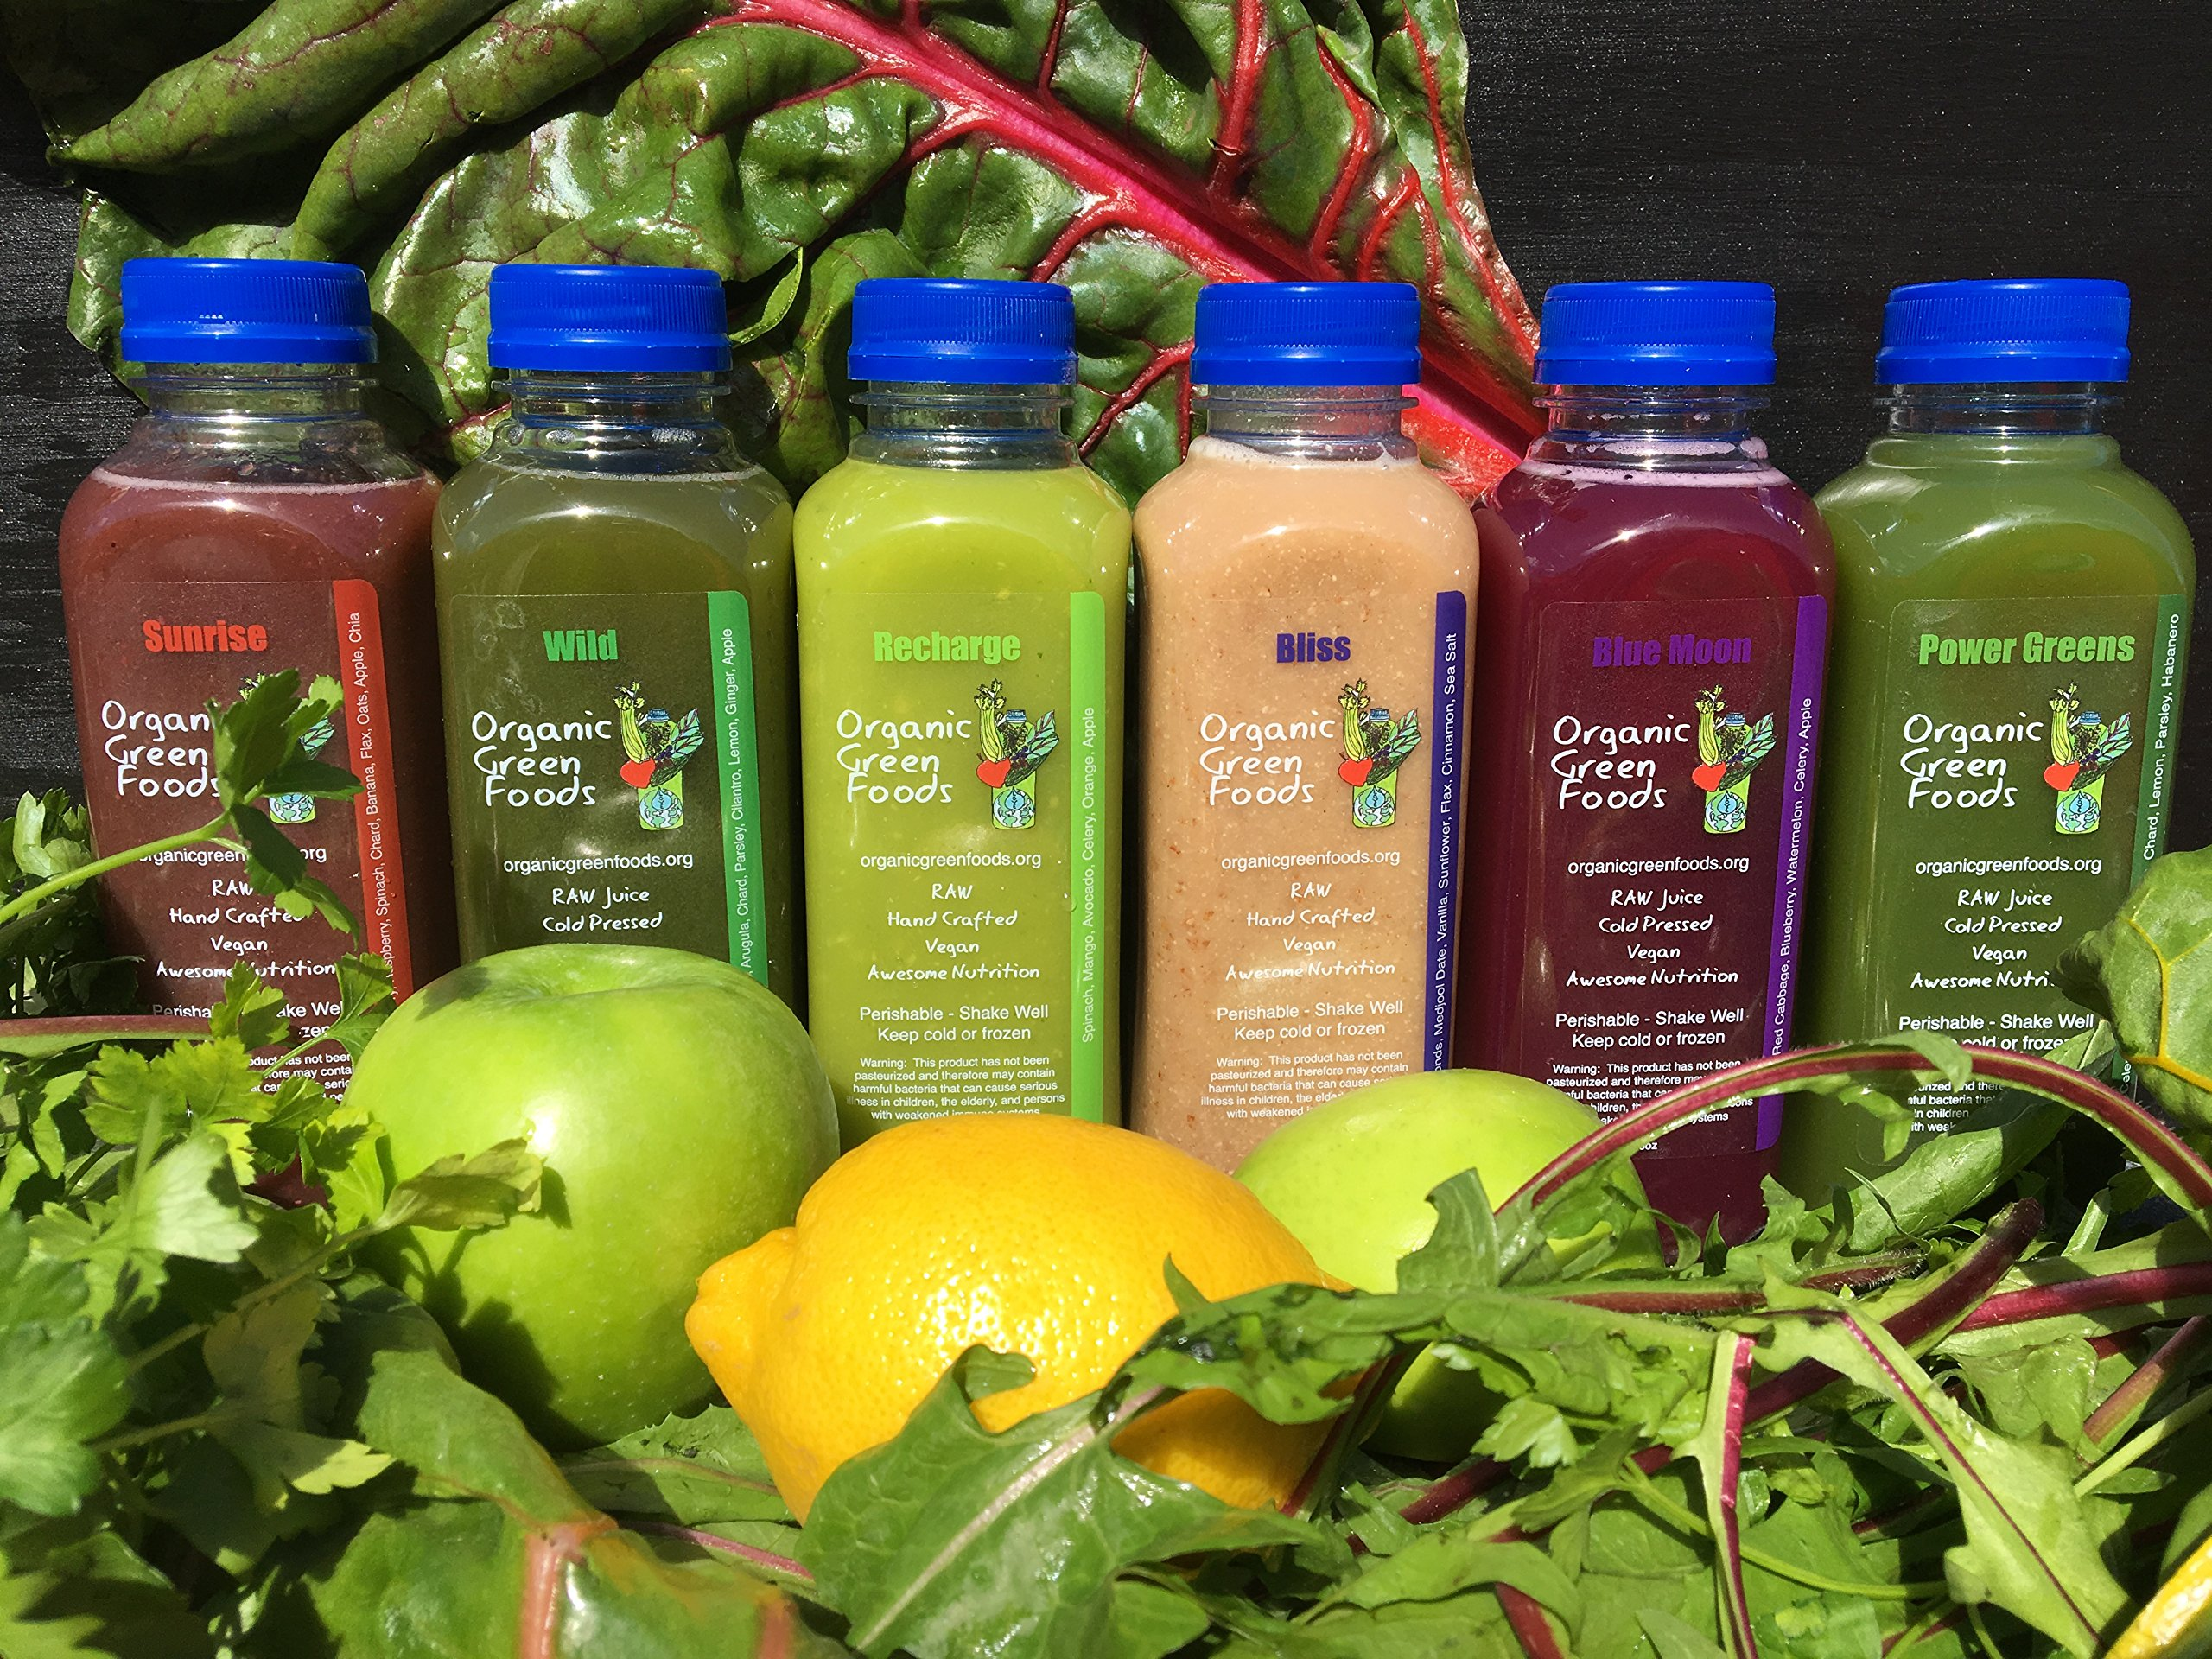 Organic Green Foods 3 Day Raw Signature Juice Cleanse - 18 Bottles by Organic Green Foods (Image #2)